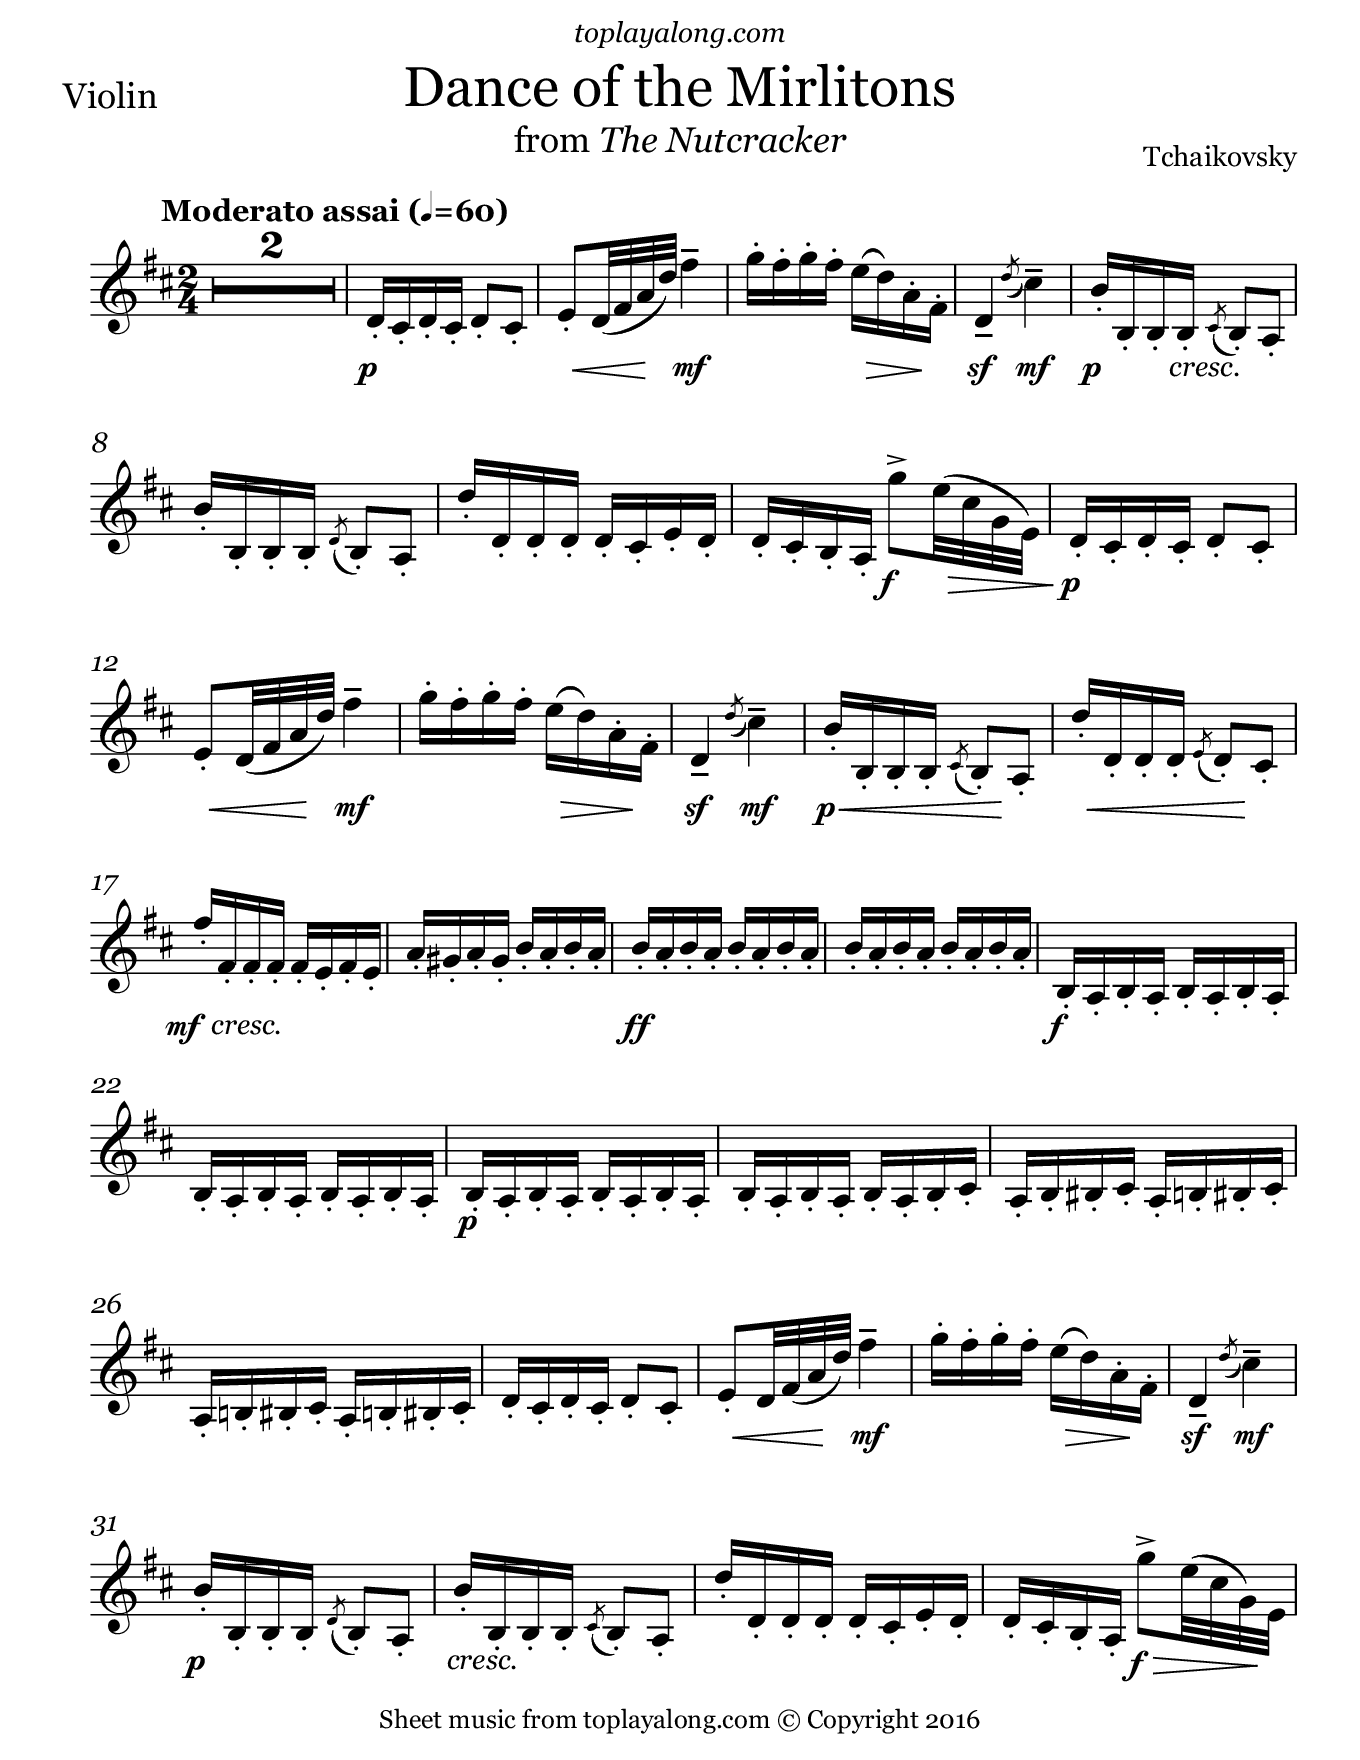 Dance of the Mirlitons from The Nutcracker by Tchaikovsky. Sheet music for Violin, page 1.